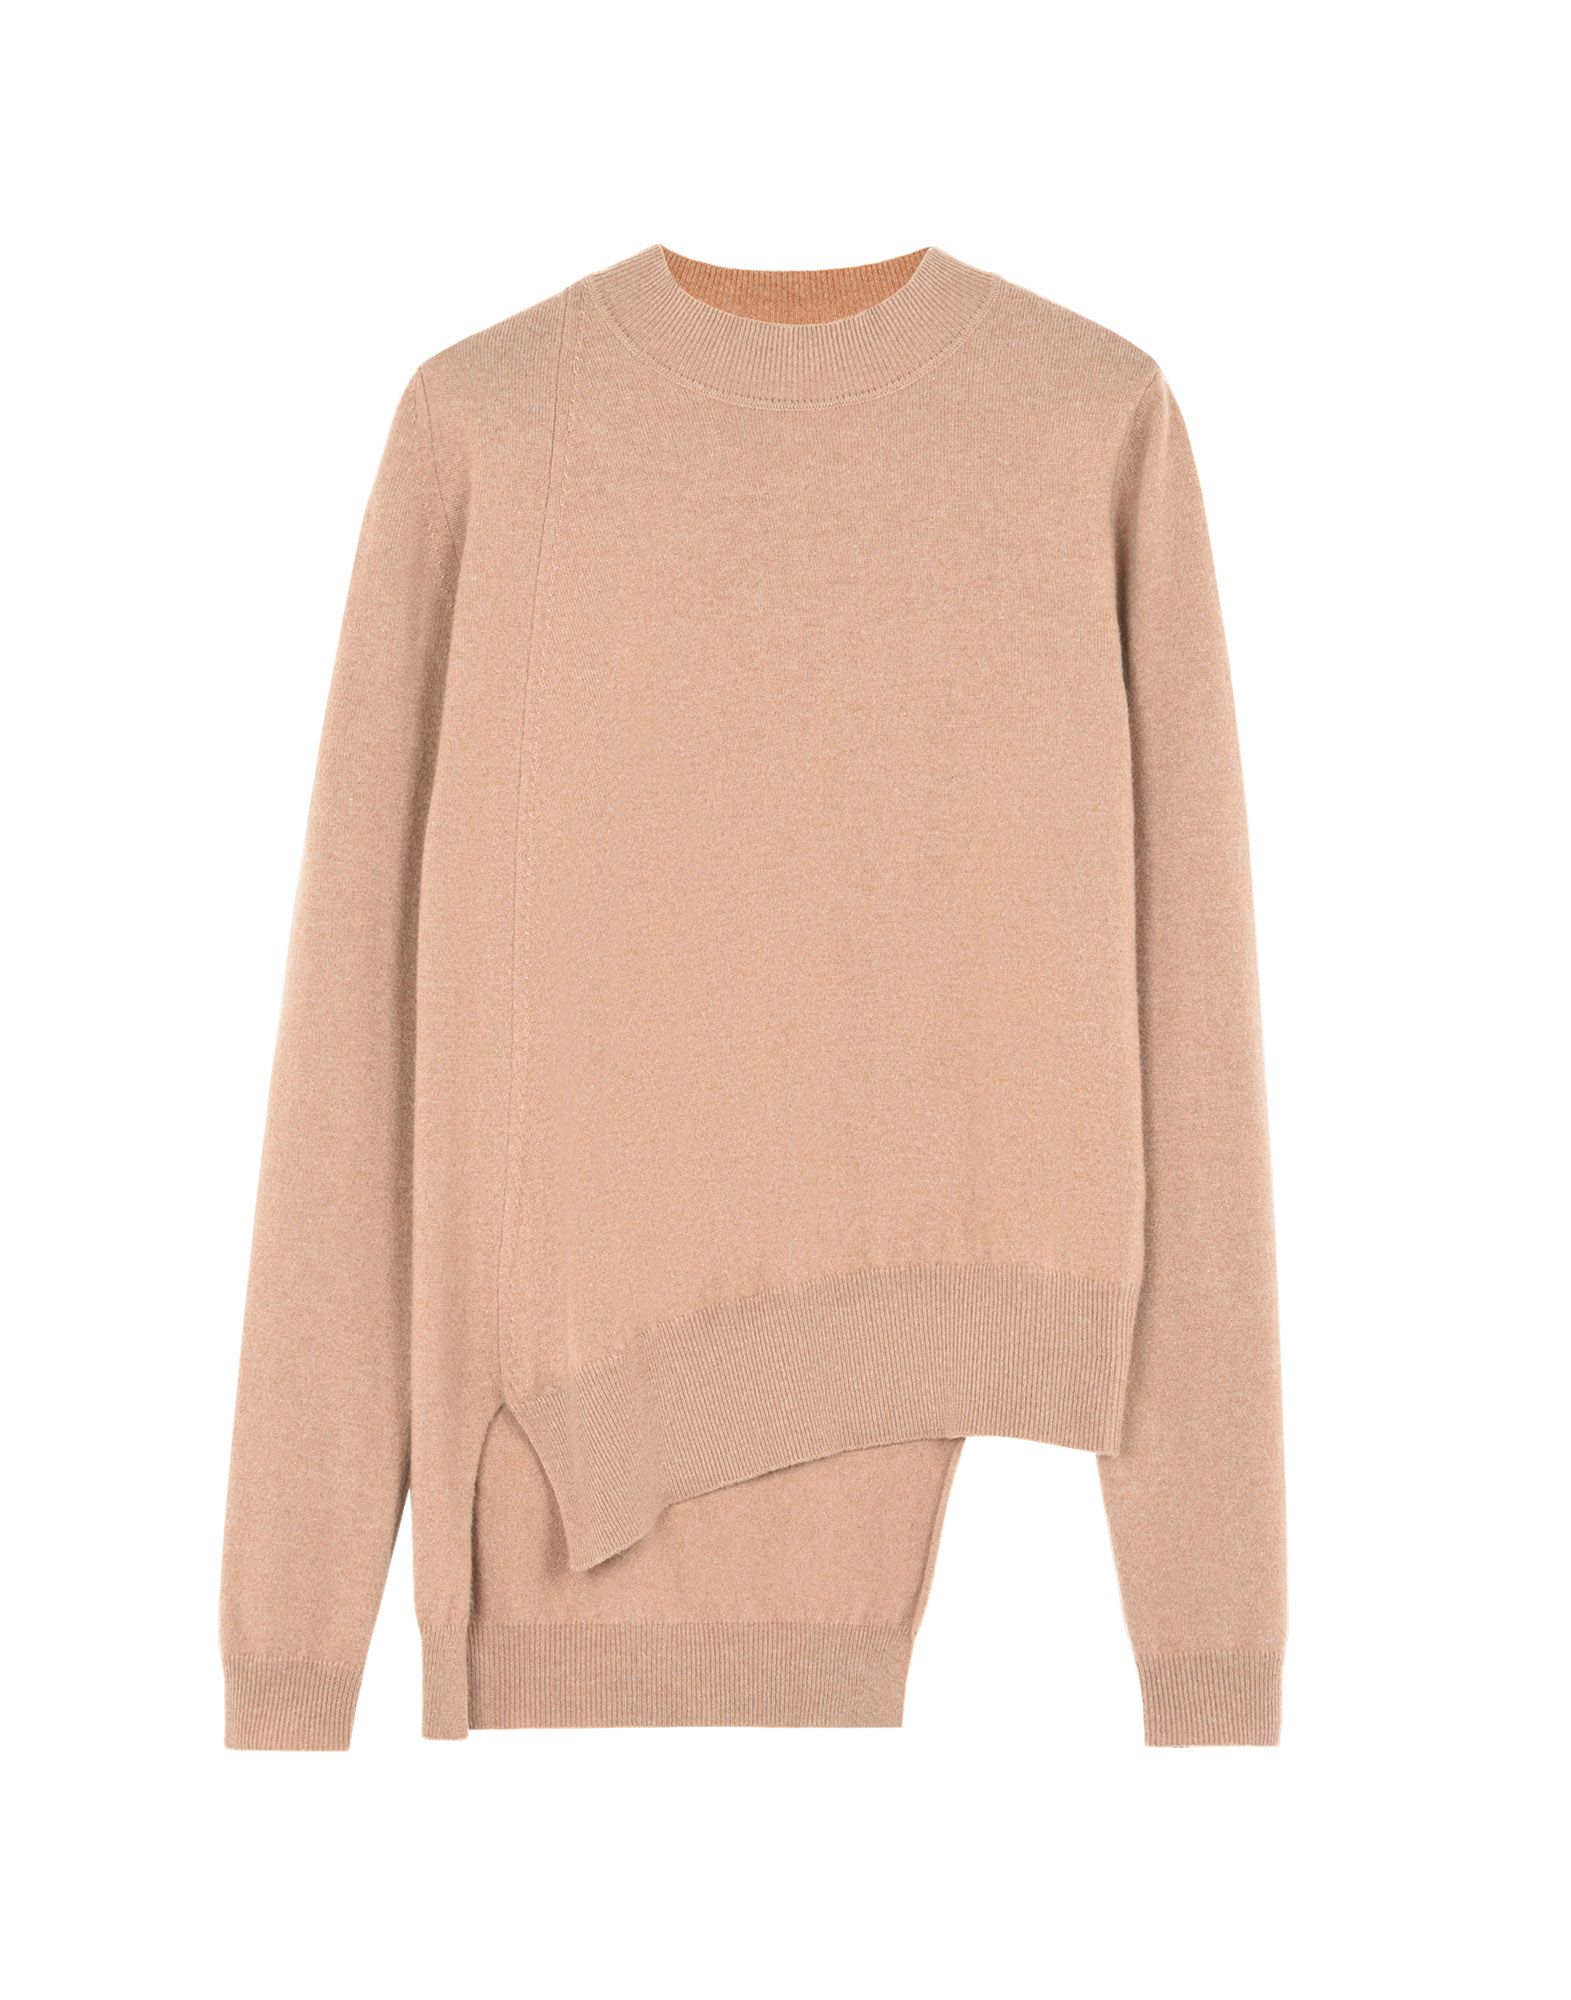 SWEATER - CAMEL